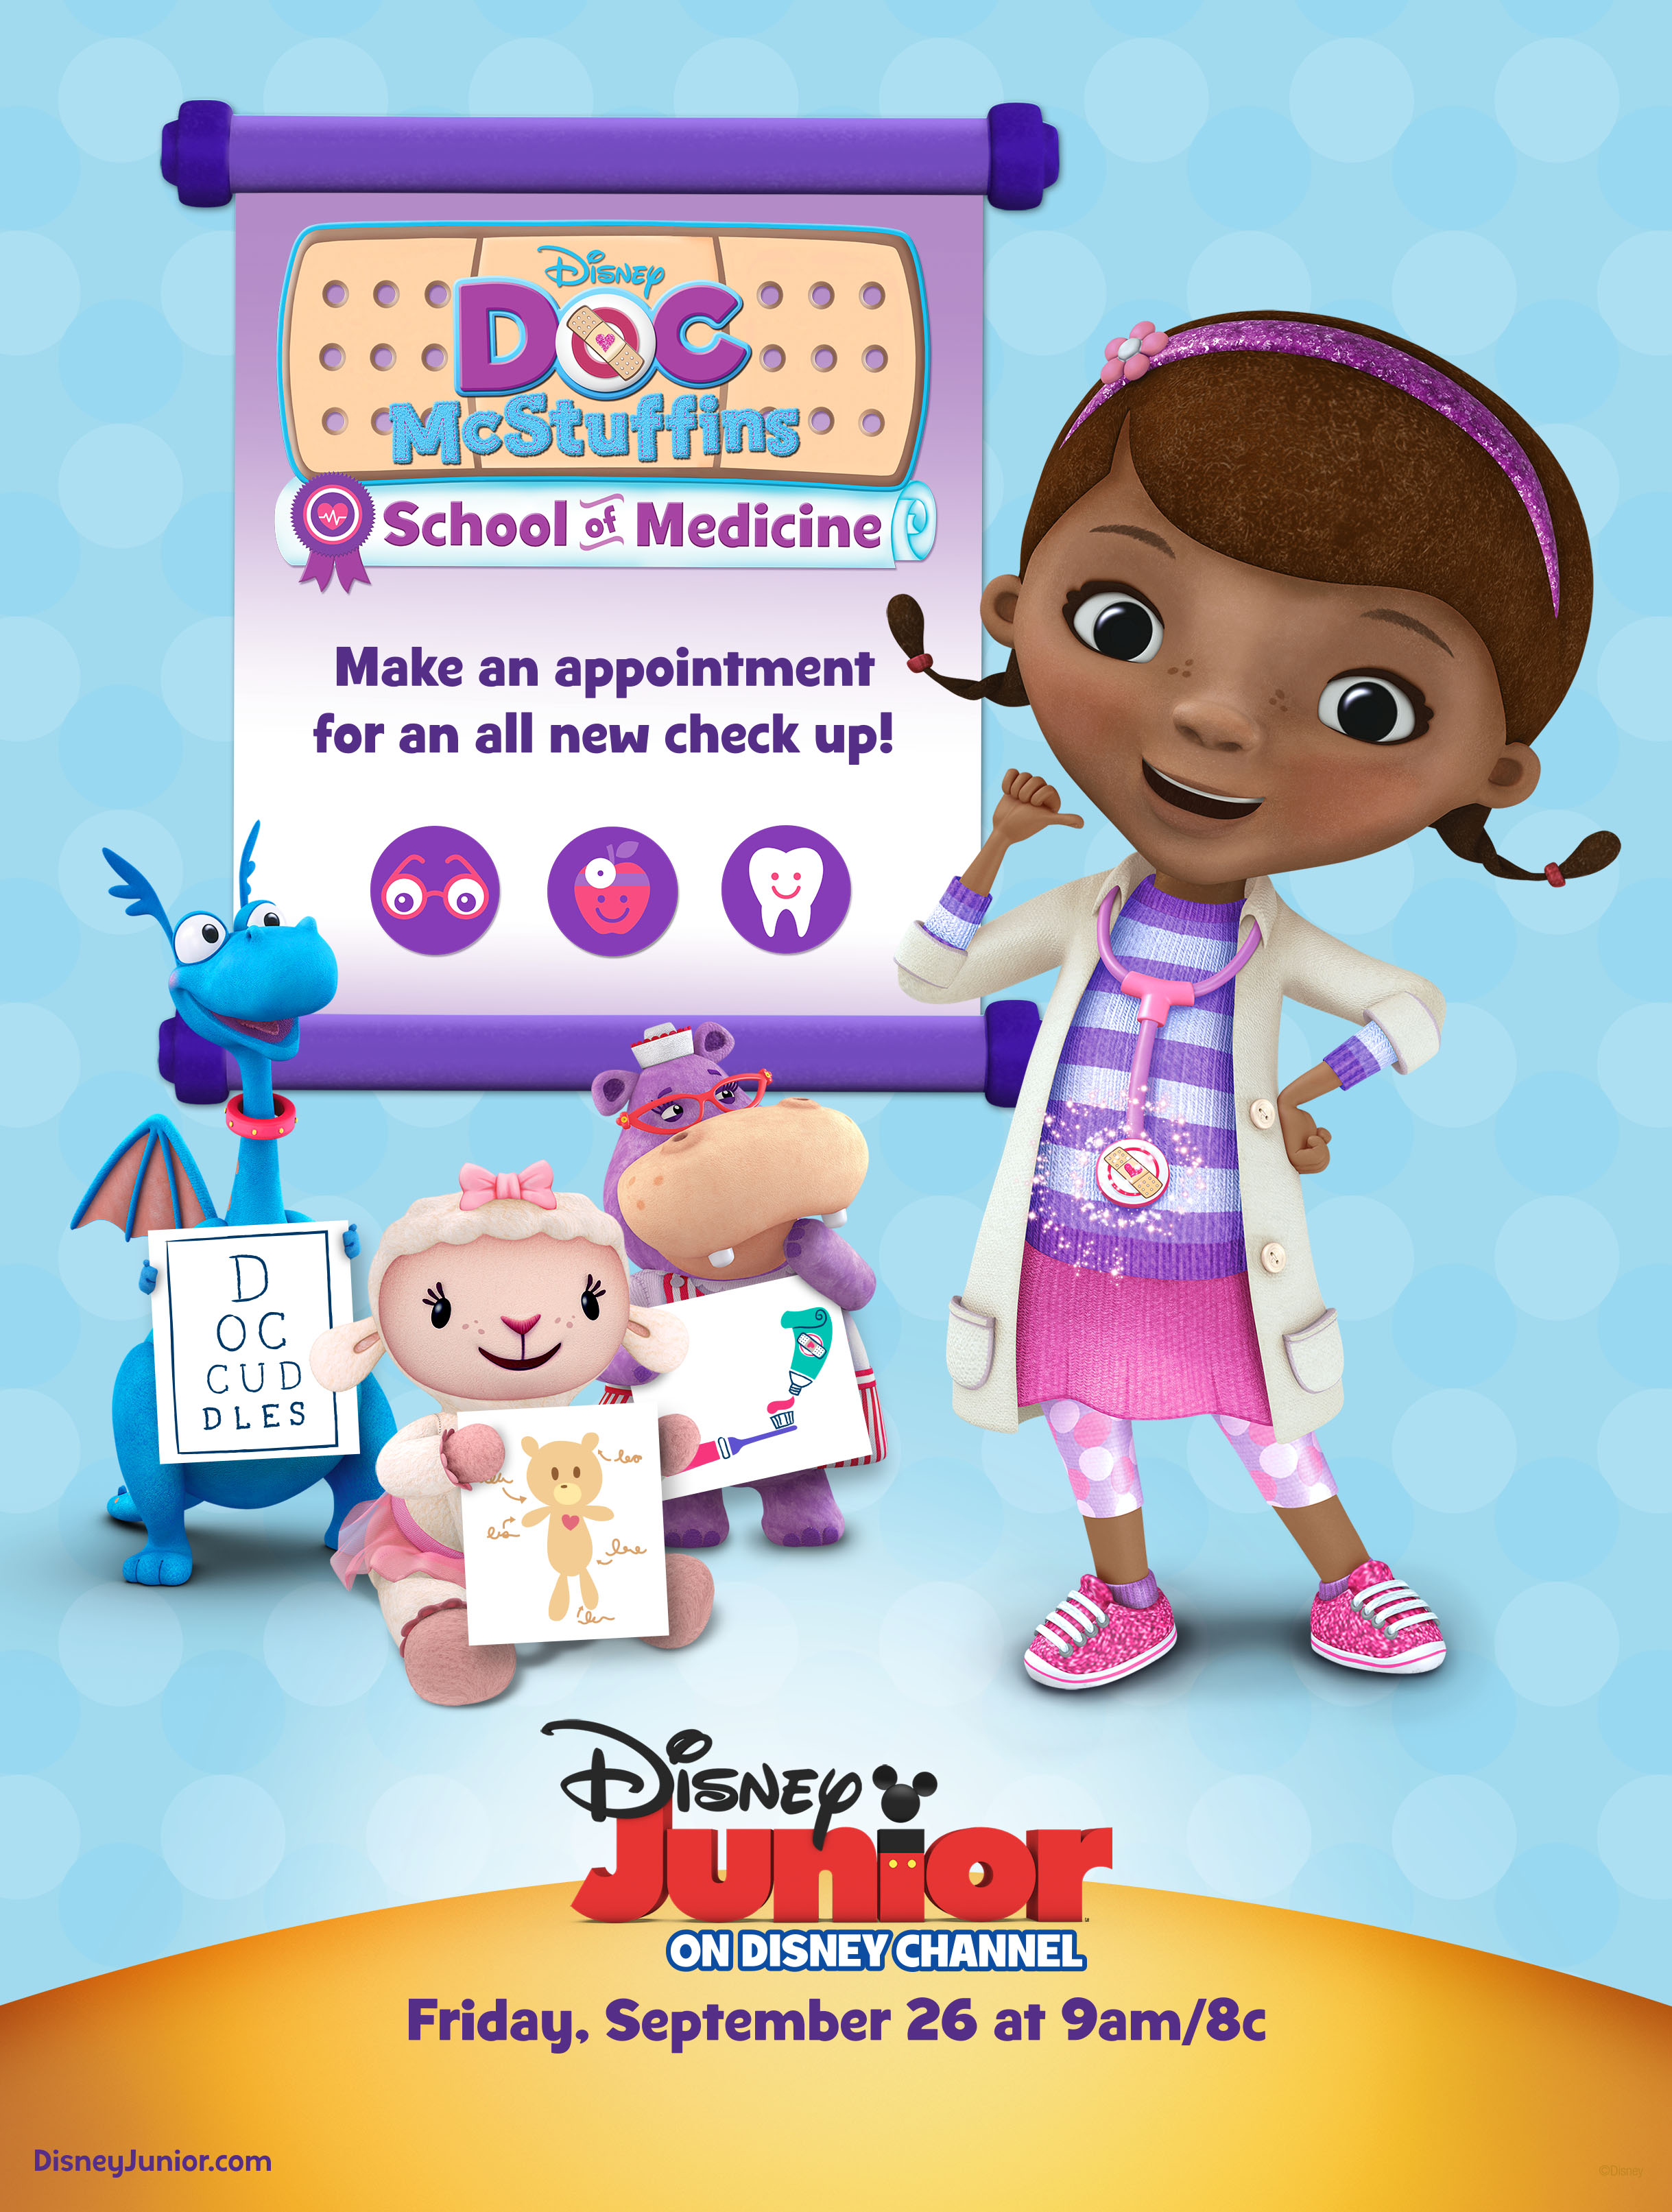 Doc mcstuffins coloring pages to color online - Doc School Of Medicine Key Art 4